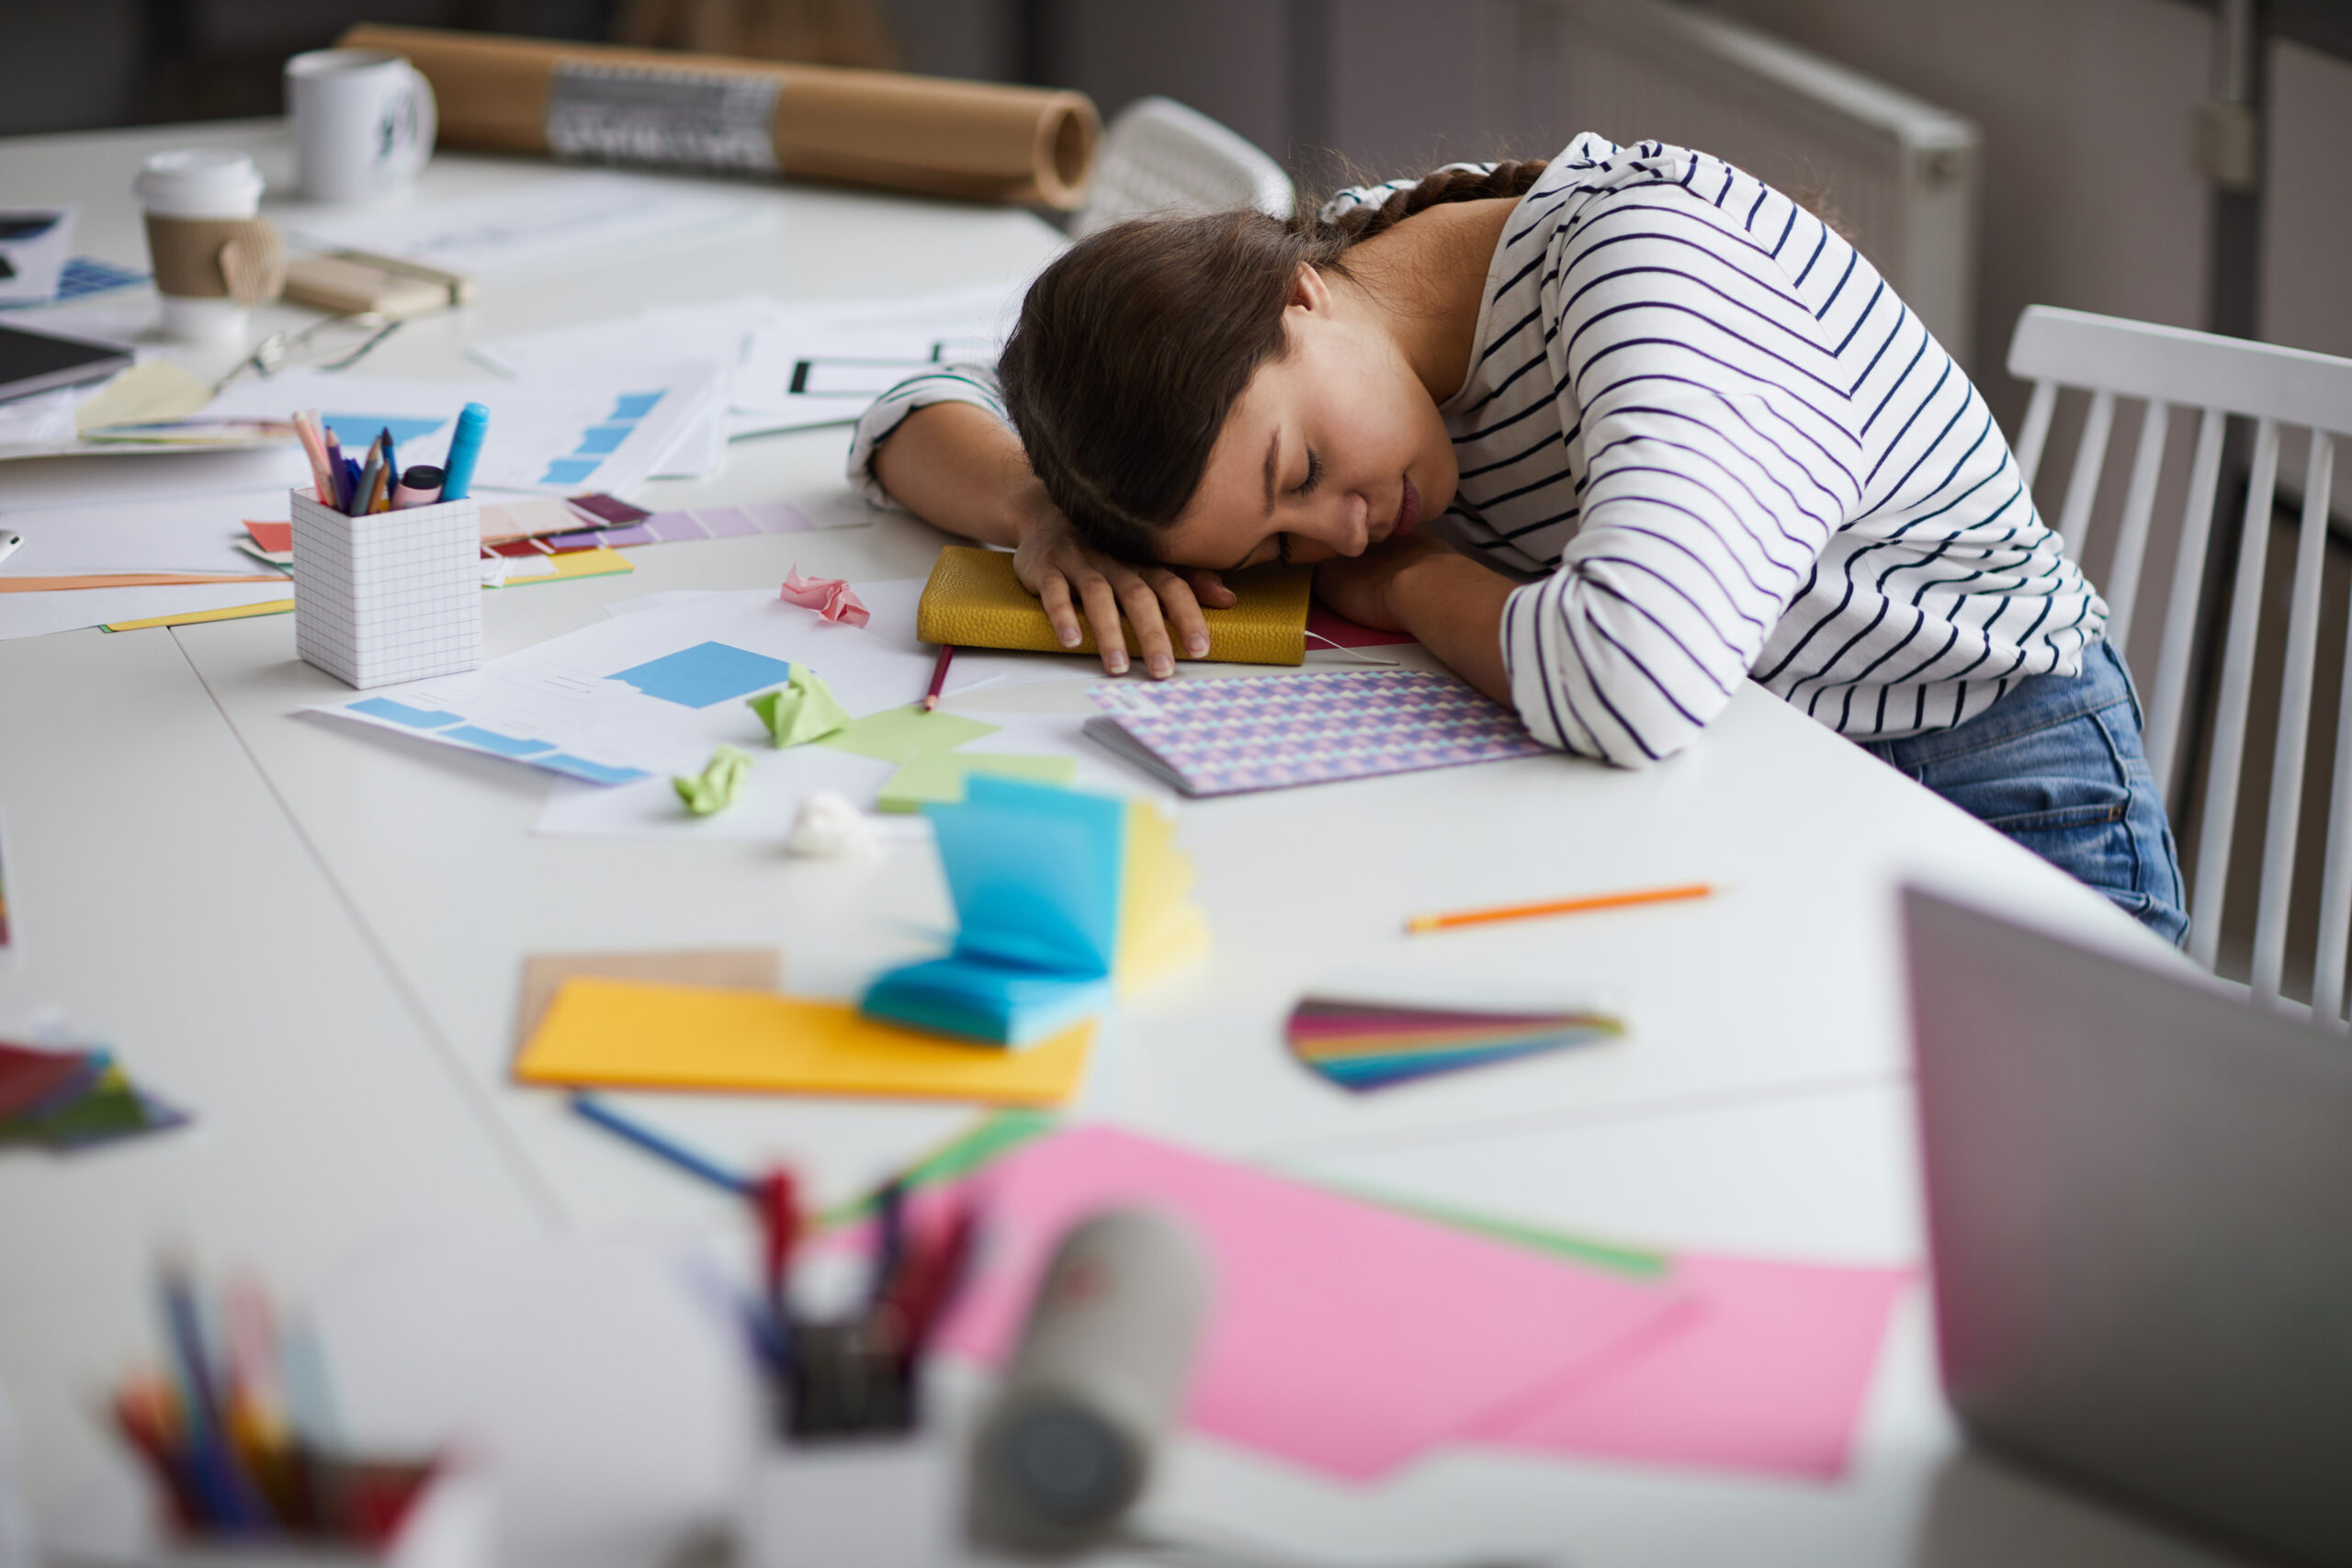 exhausted young woman sleeping at work AMYVU2X scaled